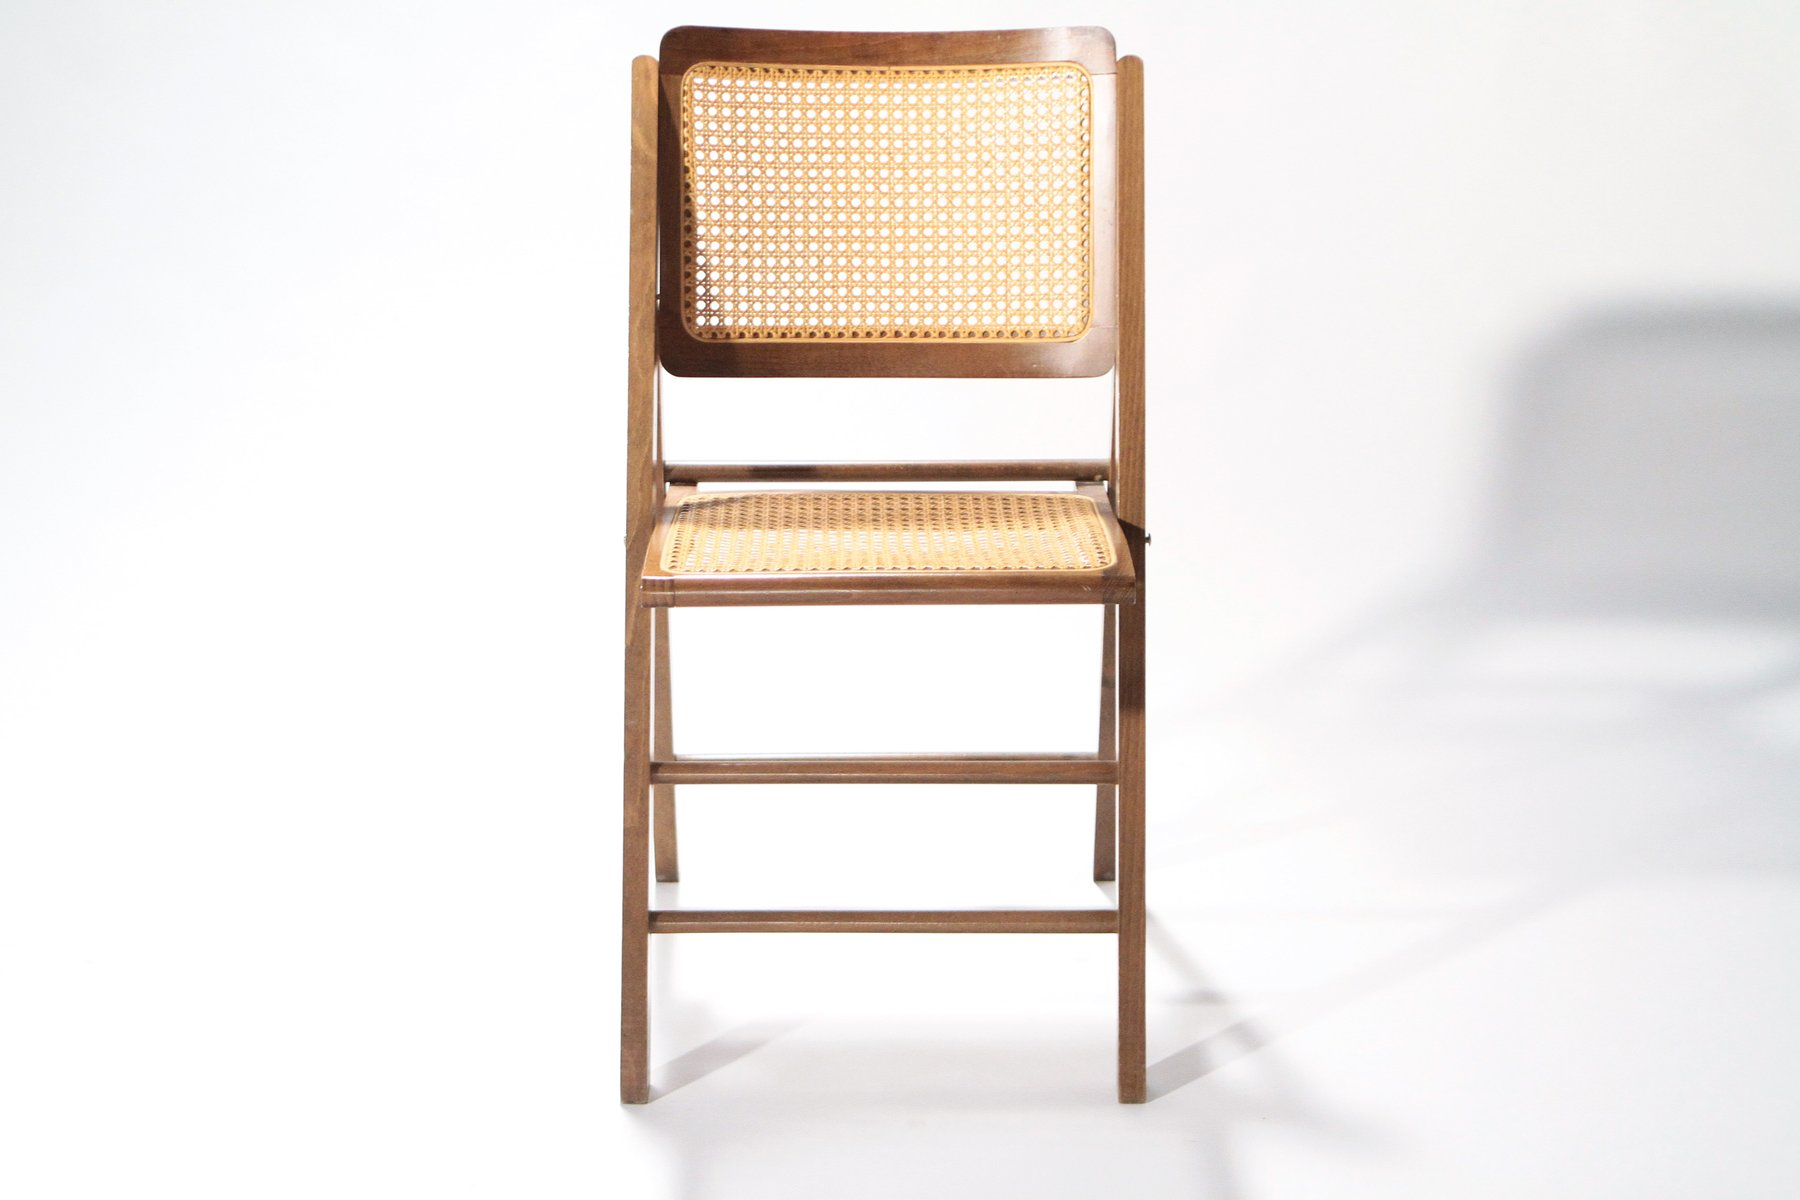 Mid Century French Cane Folding Chairs 1950s Set of 2 for sale